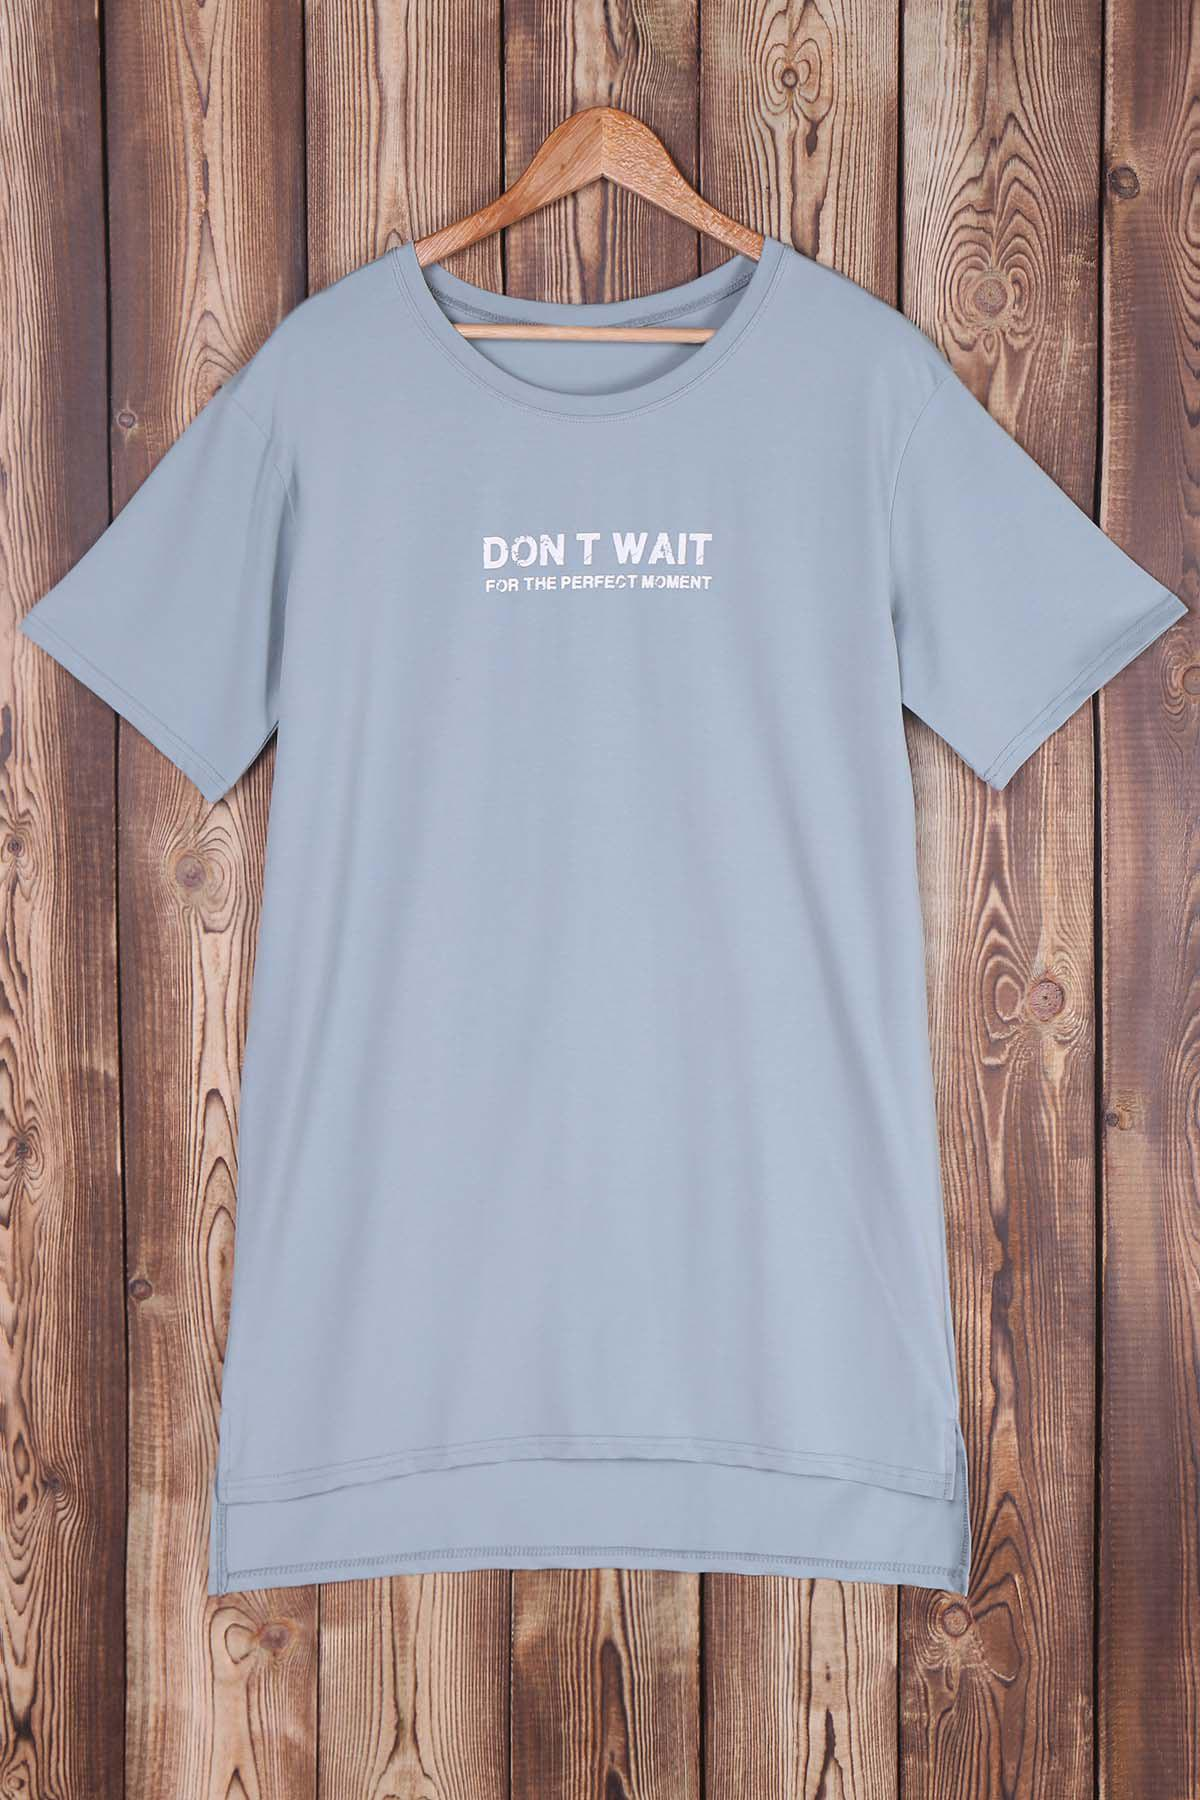 High-Low Letter Print Jewel Neck Short Sleeve T-Shirt - GRAY ONE SIZE(FIT SIZE XS TO M)